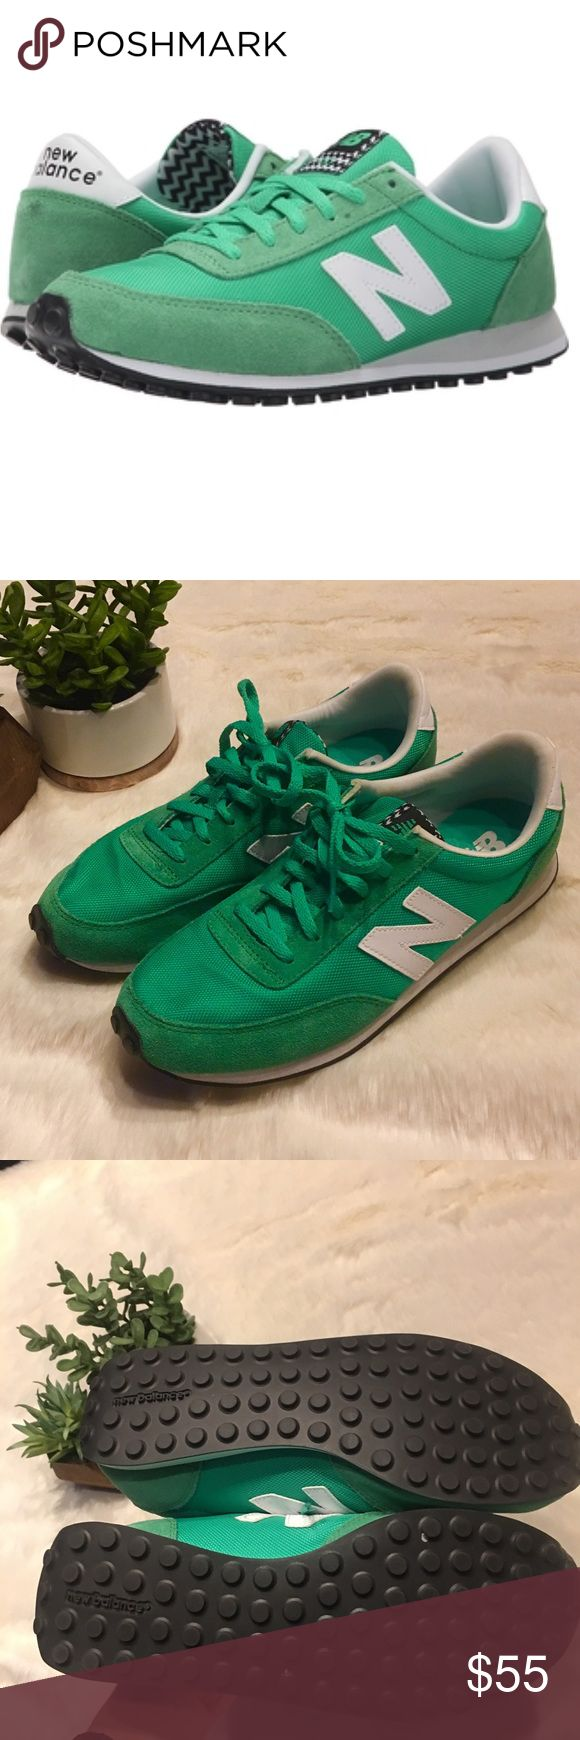 Kelly Green New Balance 410 - NWOT Never worn! I LOVe these but slightly too small for me  Bright Kelly Green color. Leather toe and heel. New Balance Shoes Sneakers